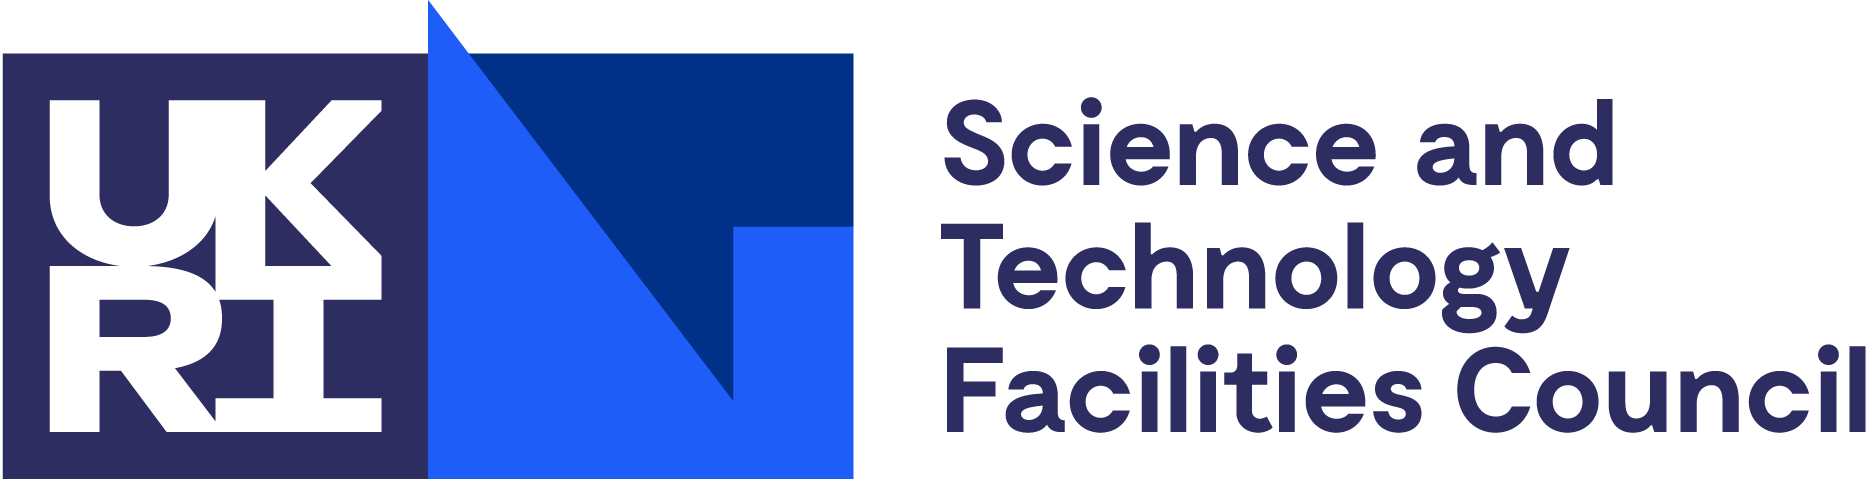 UK Research & Innovation, Science & Technology Facilities Council